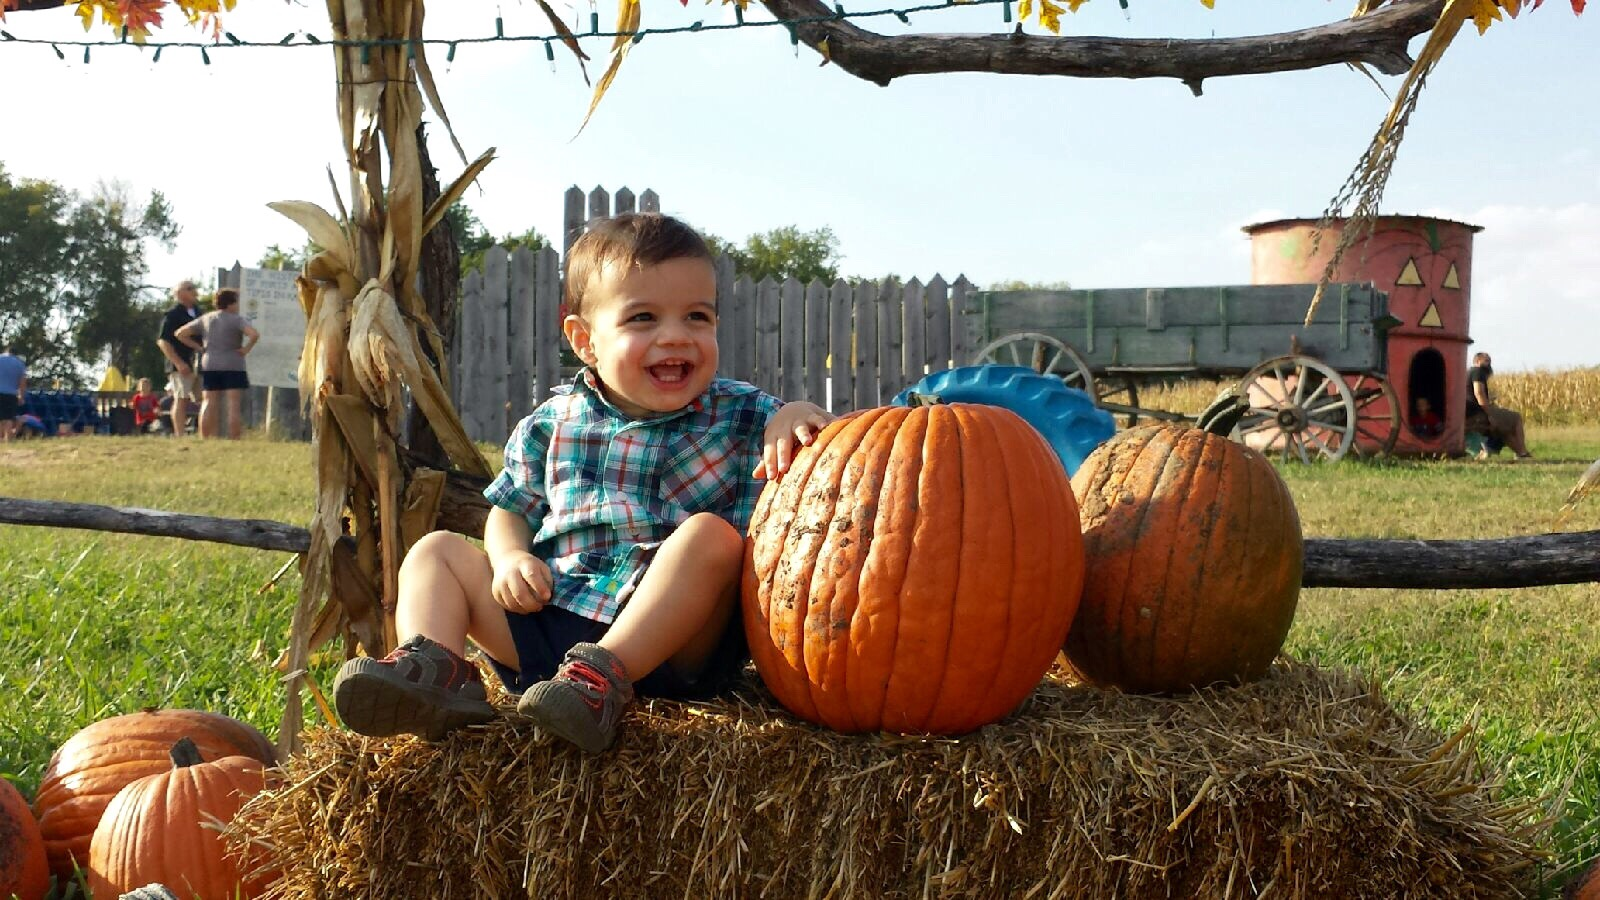 Toddler's First Pumpkin Patch! | {My Life Space Moments} 2014